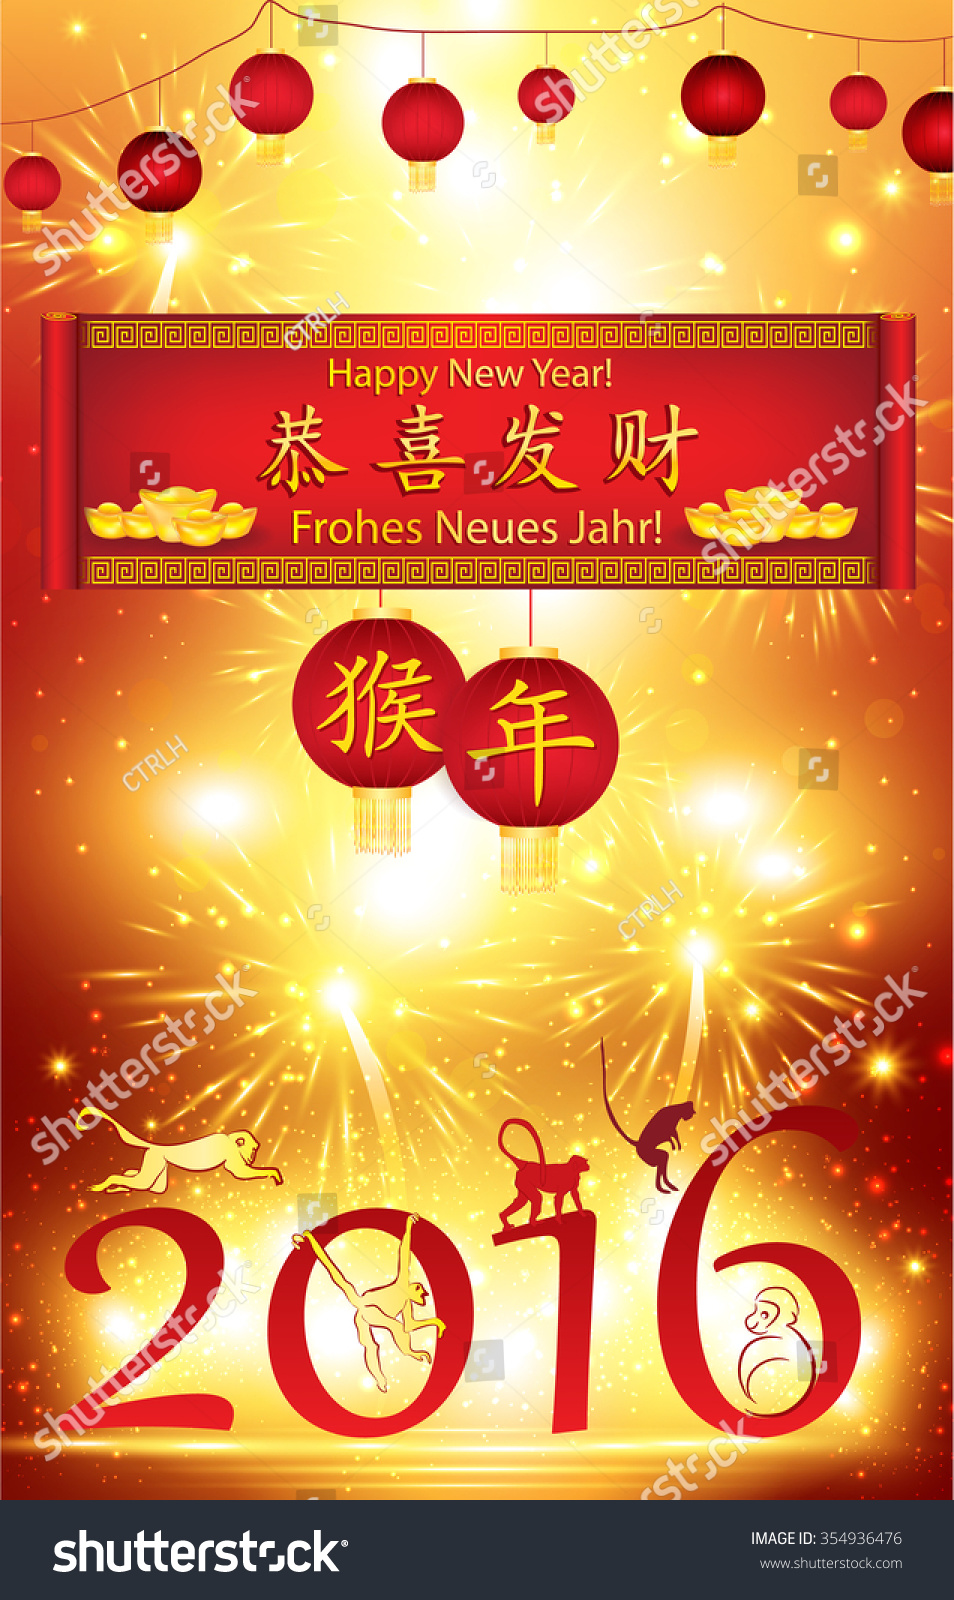 Chinese new year greeting card text stock illustration 354936476 chinese new year greeting card text stock illustration 354936476 shutterstock m4hsunfo